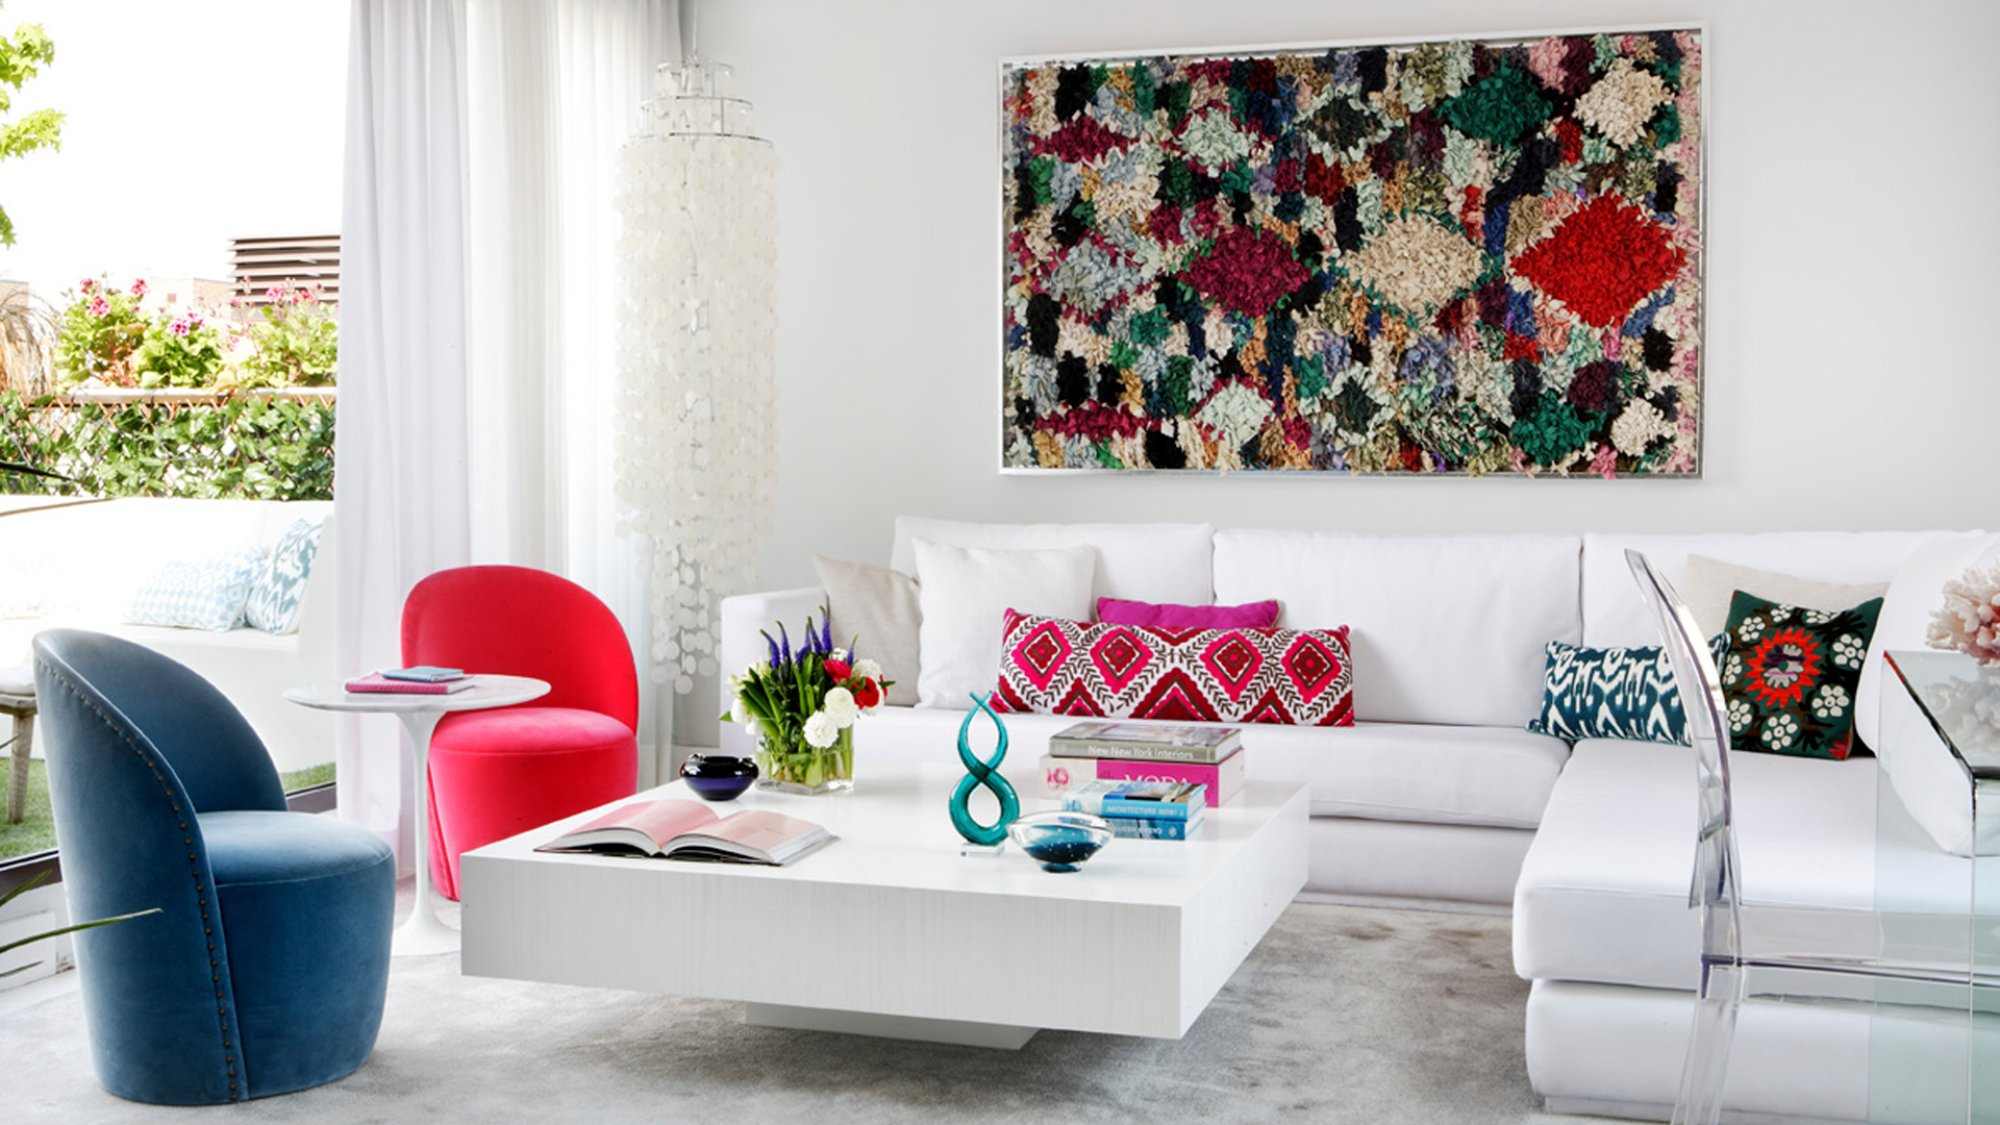 Best Of Black British: 10 Interior Designers Everyone Should Know U2013  AfricanCultureBlog